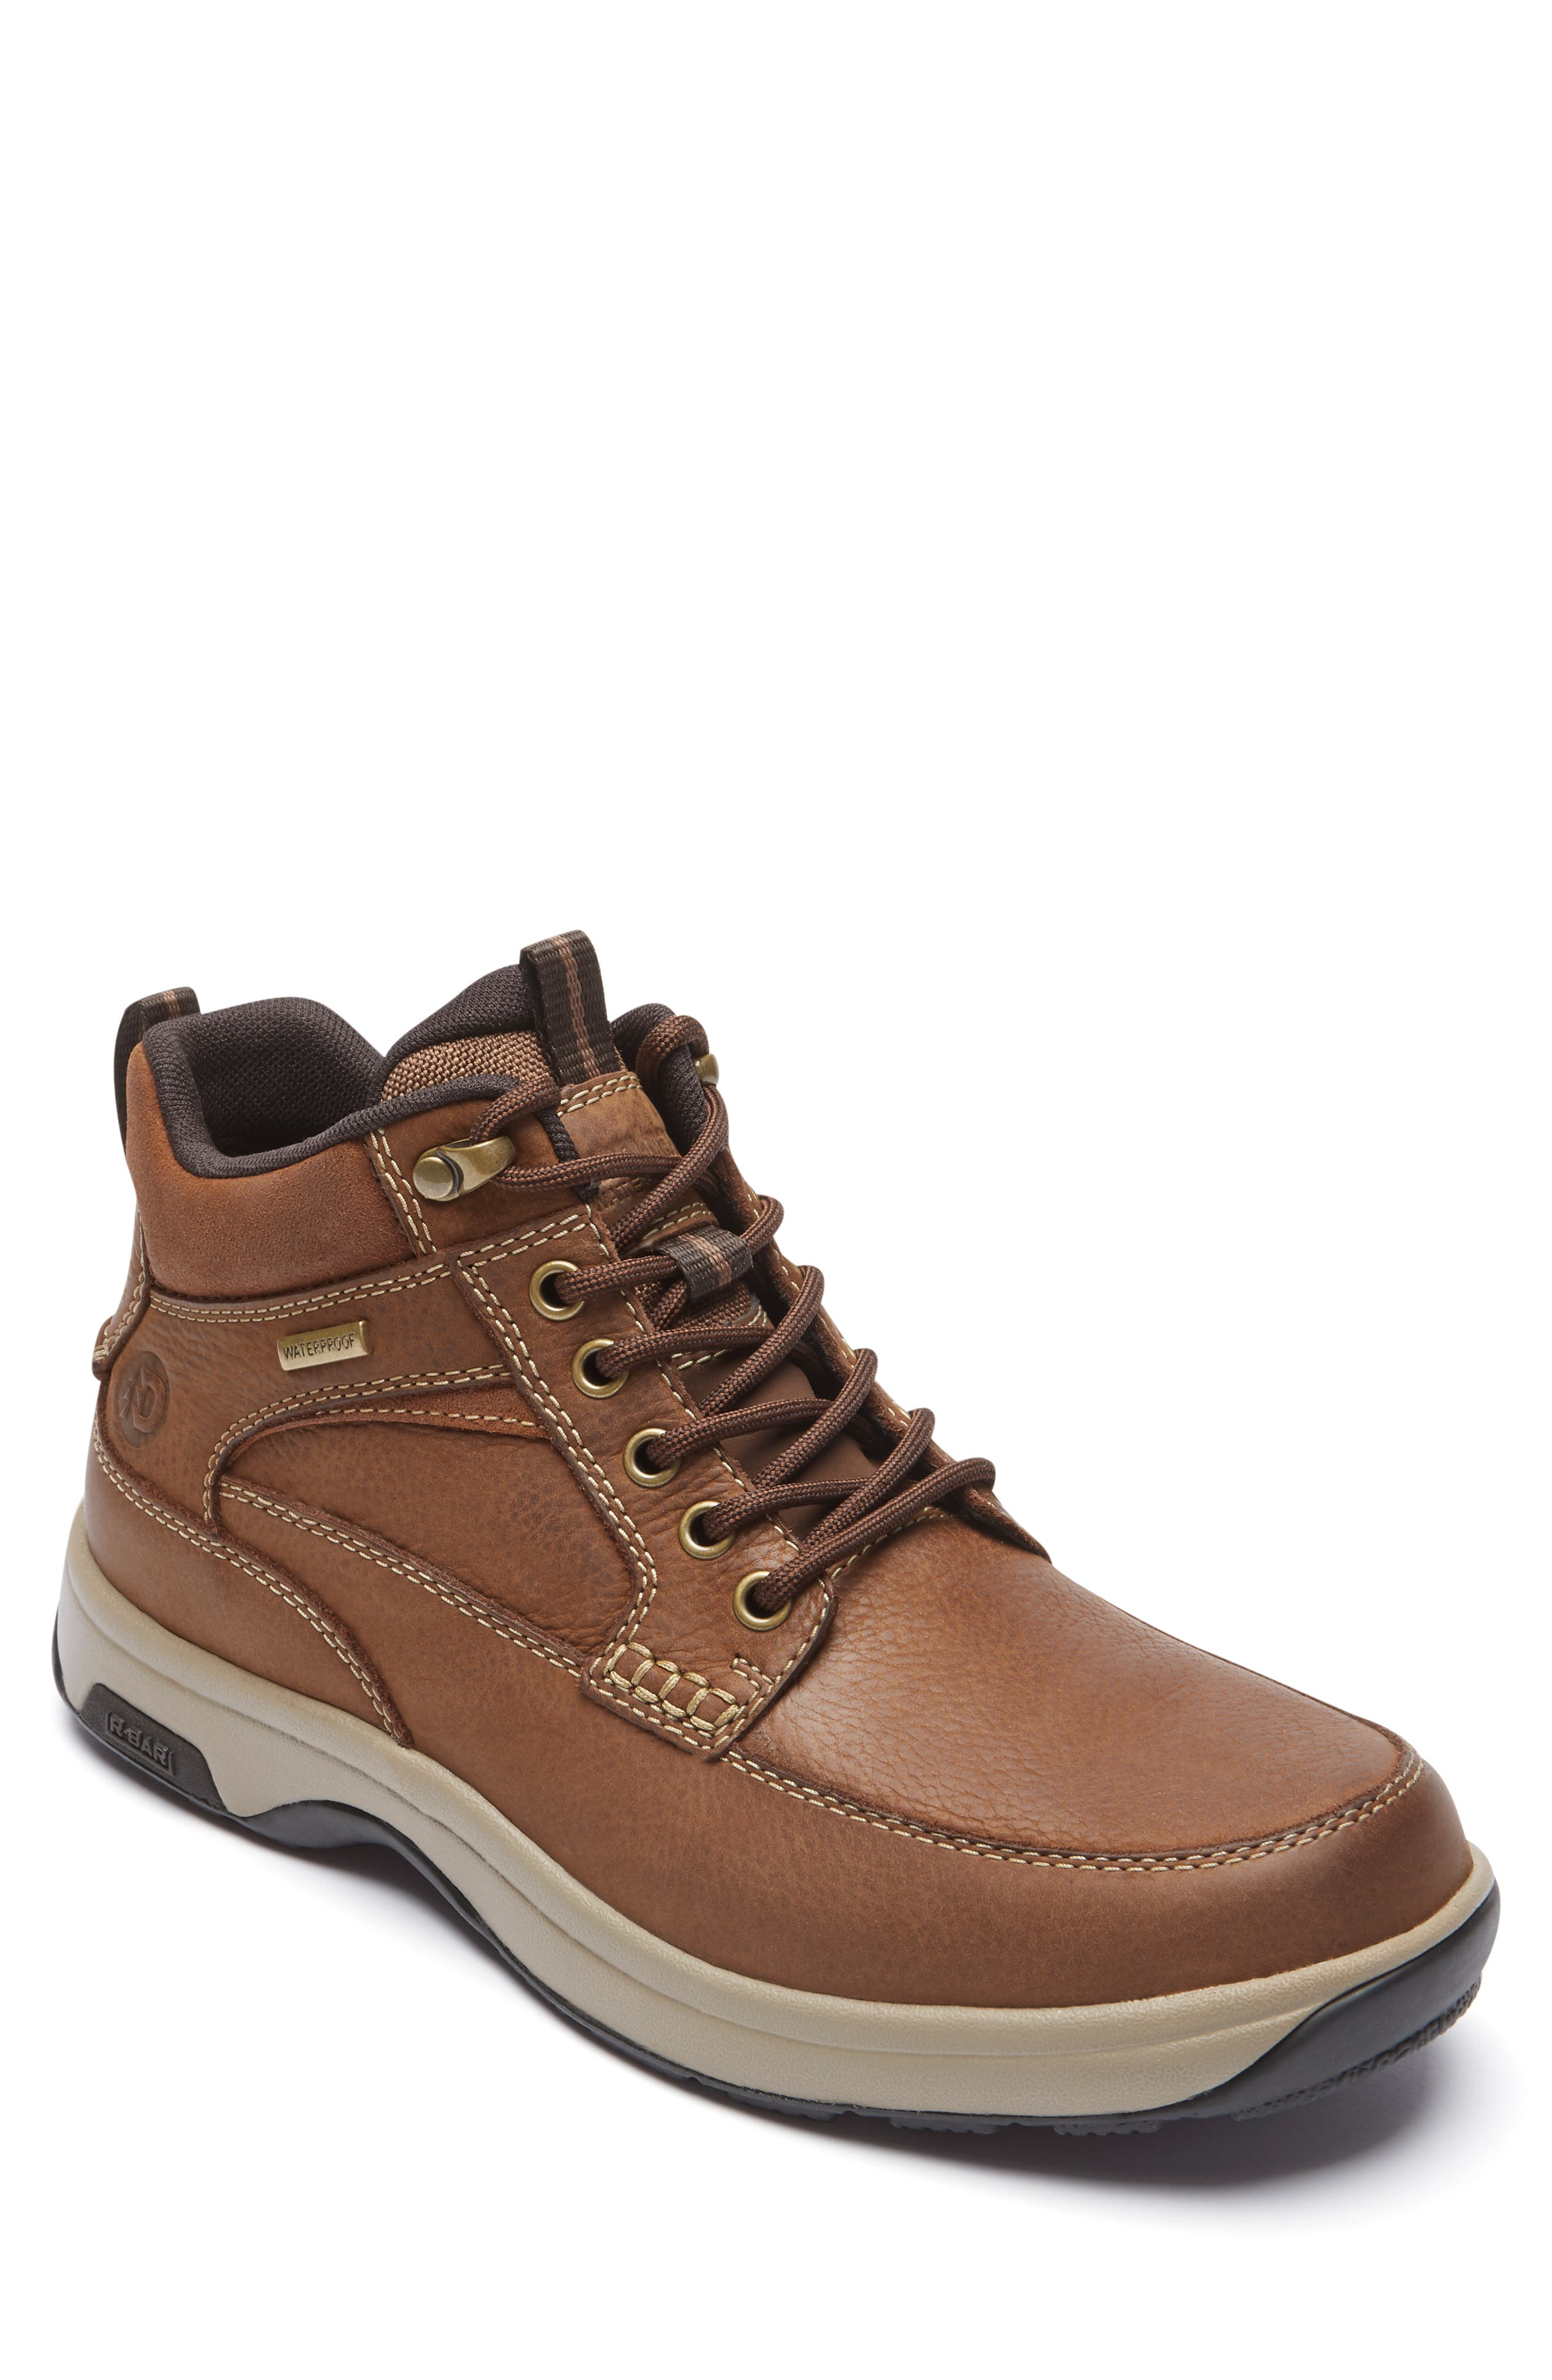 8000 Midland Waterproof Work Boot,                         Main,                         color, TAN LEATHER